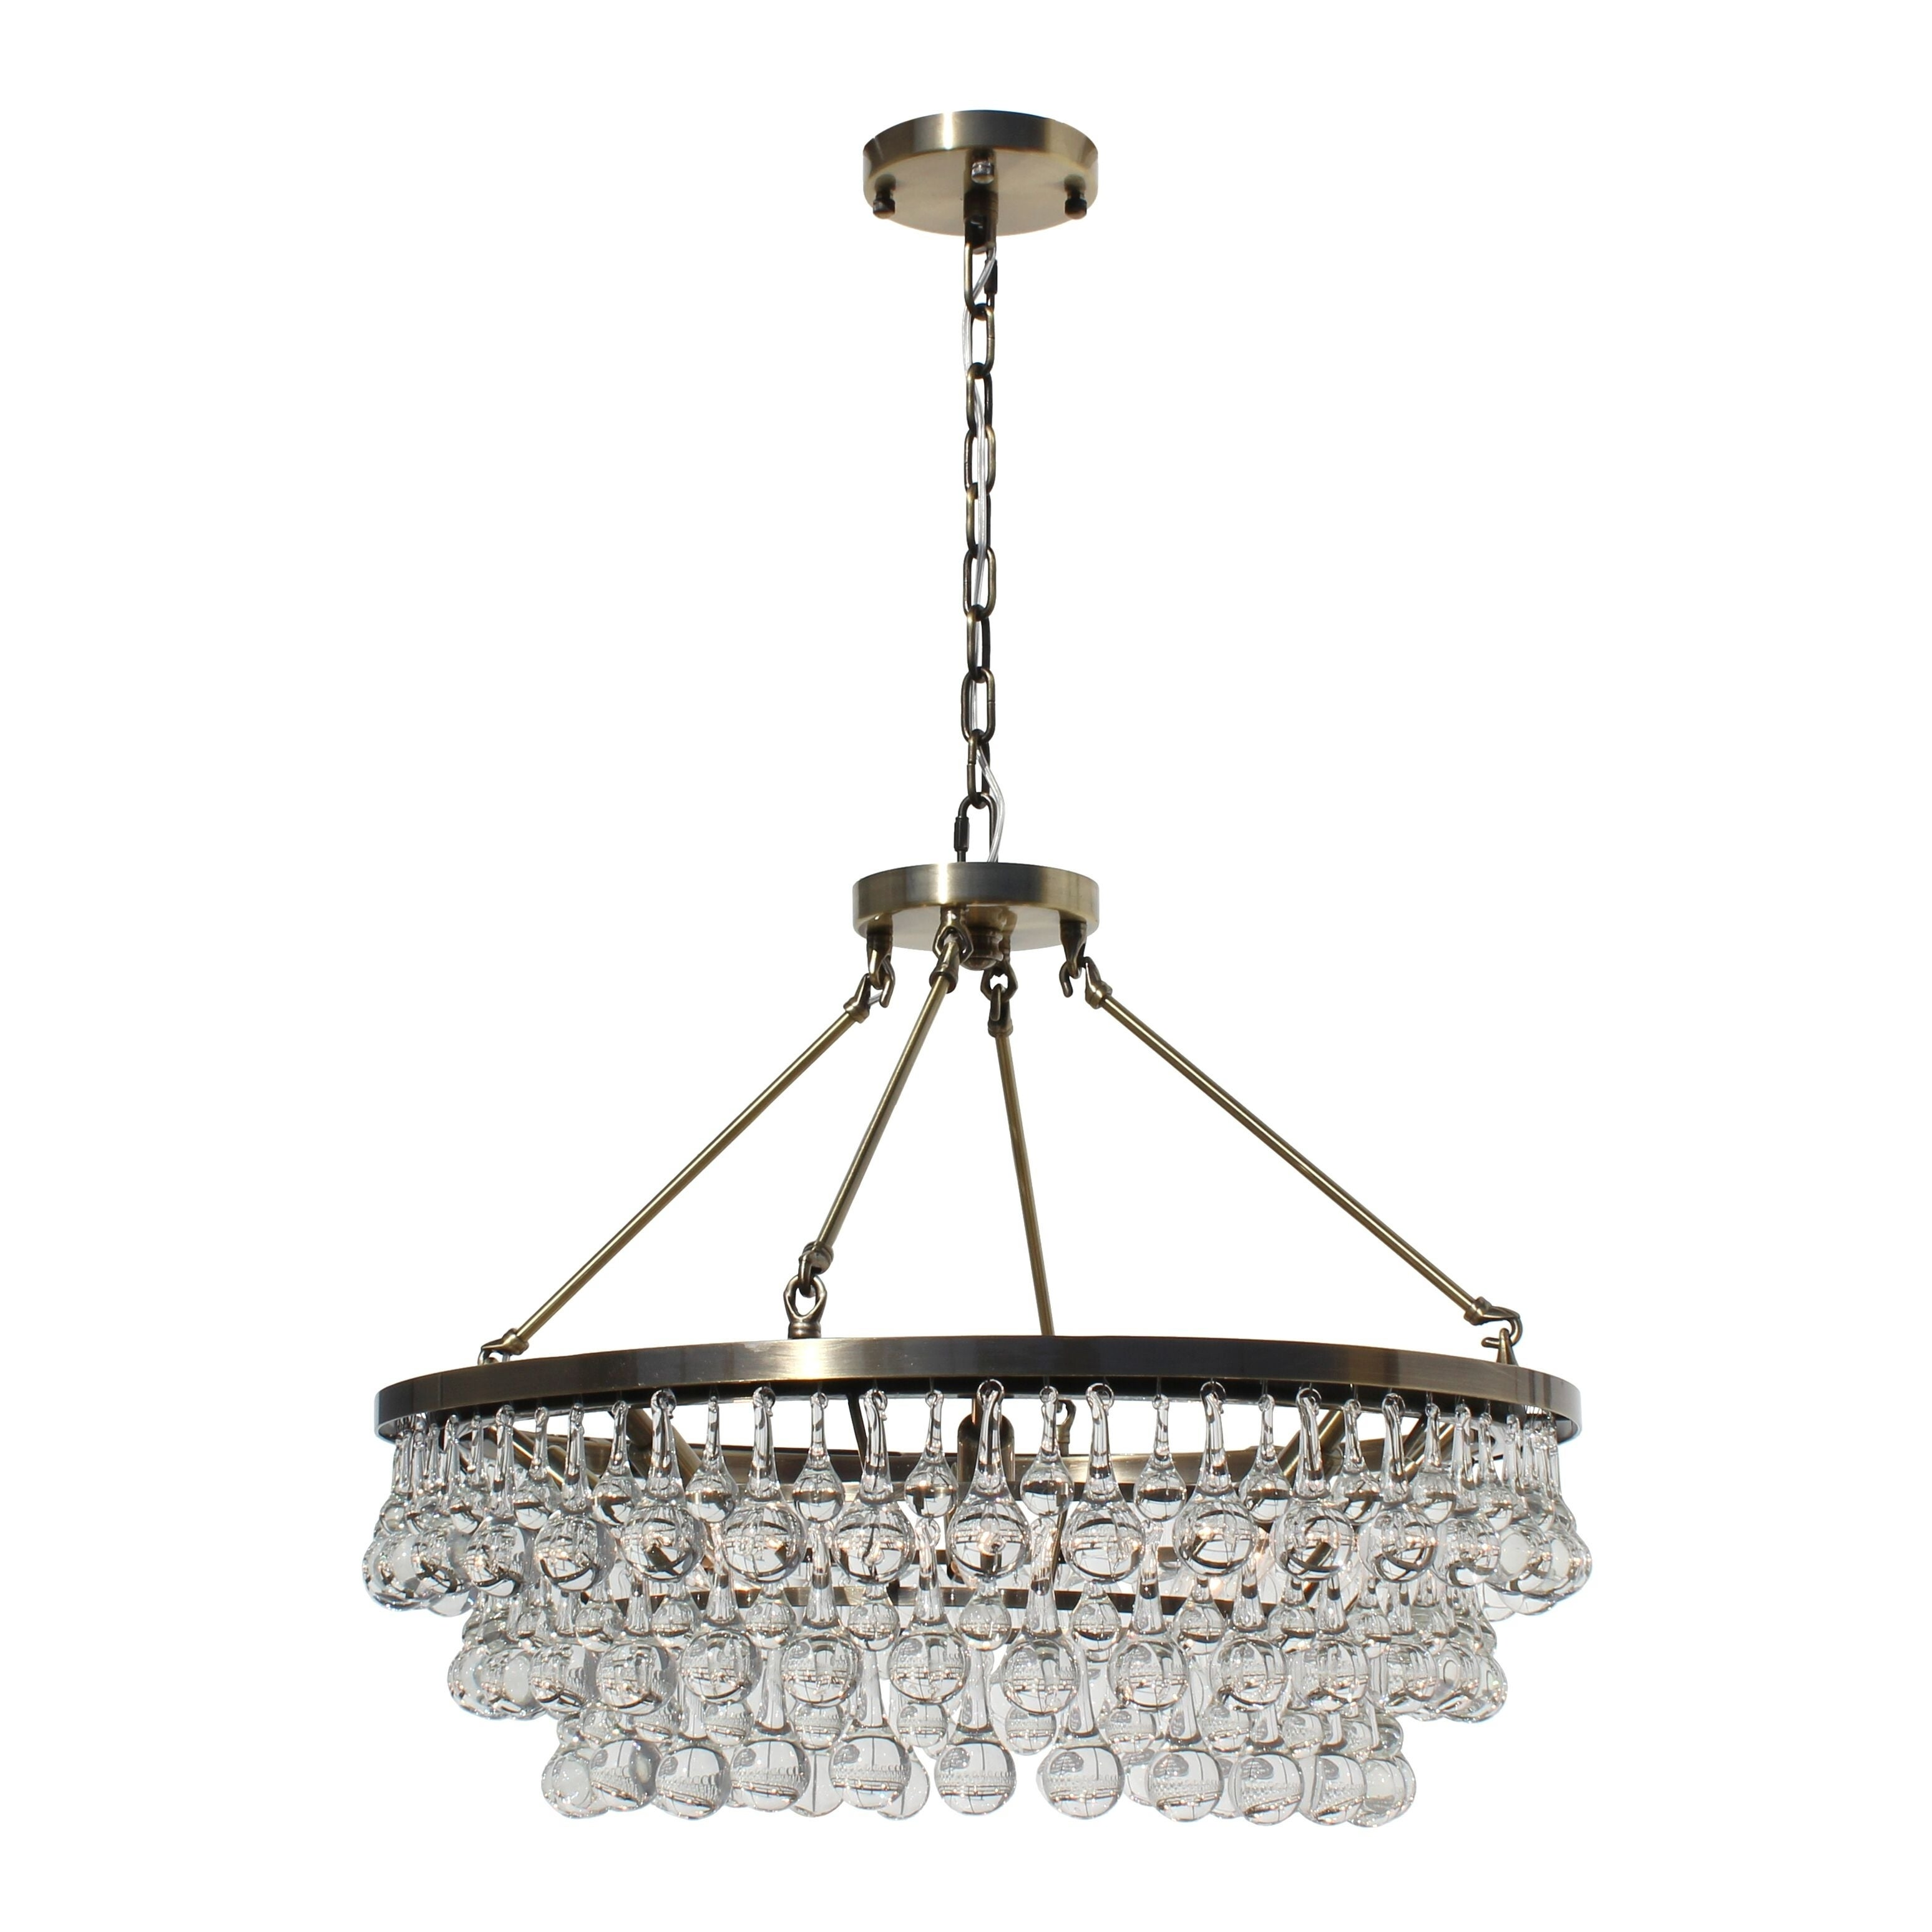 calypso collection in and ceiling with sale awesome lighting chandelier elegant ornament pendant cute shade crystorama chandeliers design ideas for mount solaris transitional crystal crystor mini home products